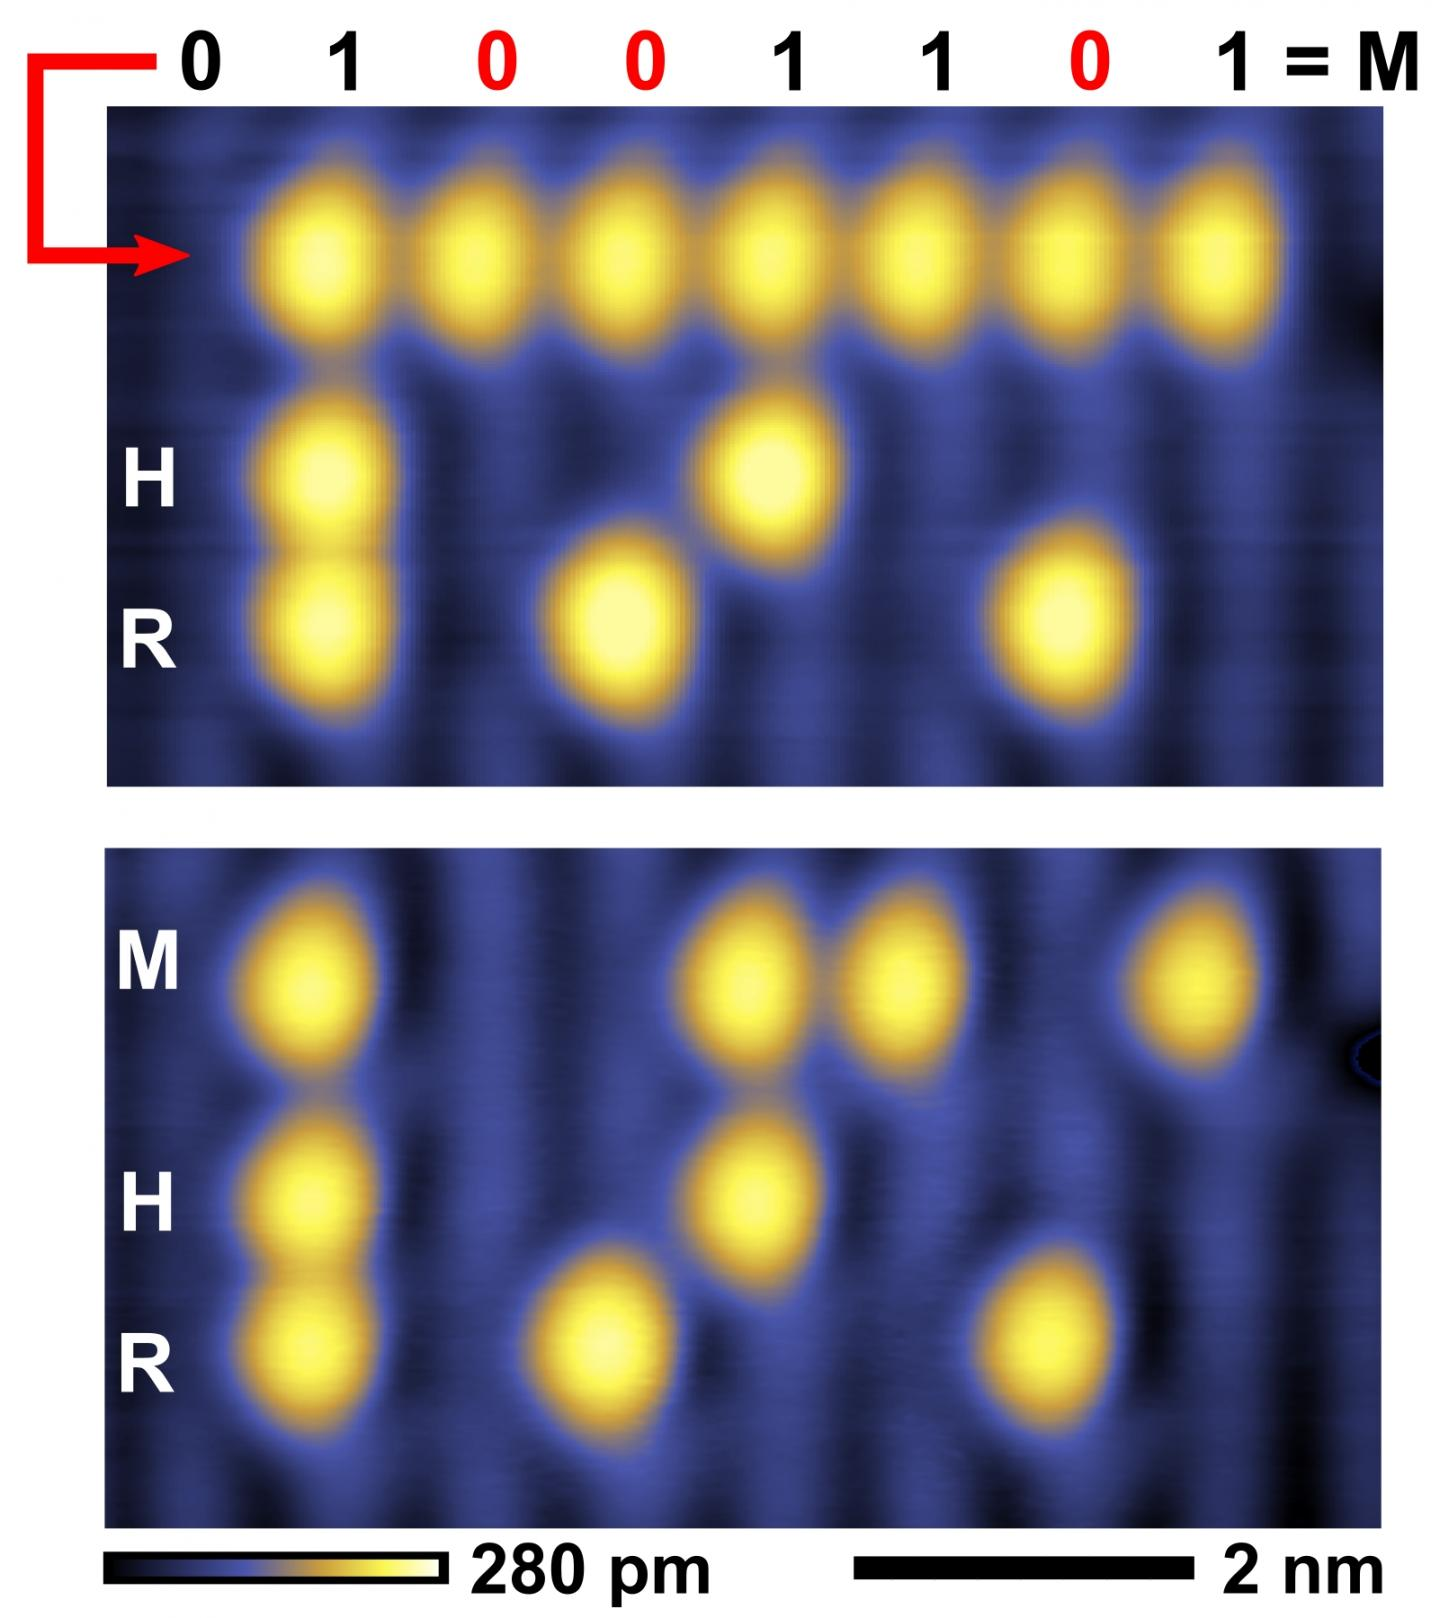 Atomic-Scale Manufacturing Method Could Enable Ultra-Efficient Computers